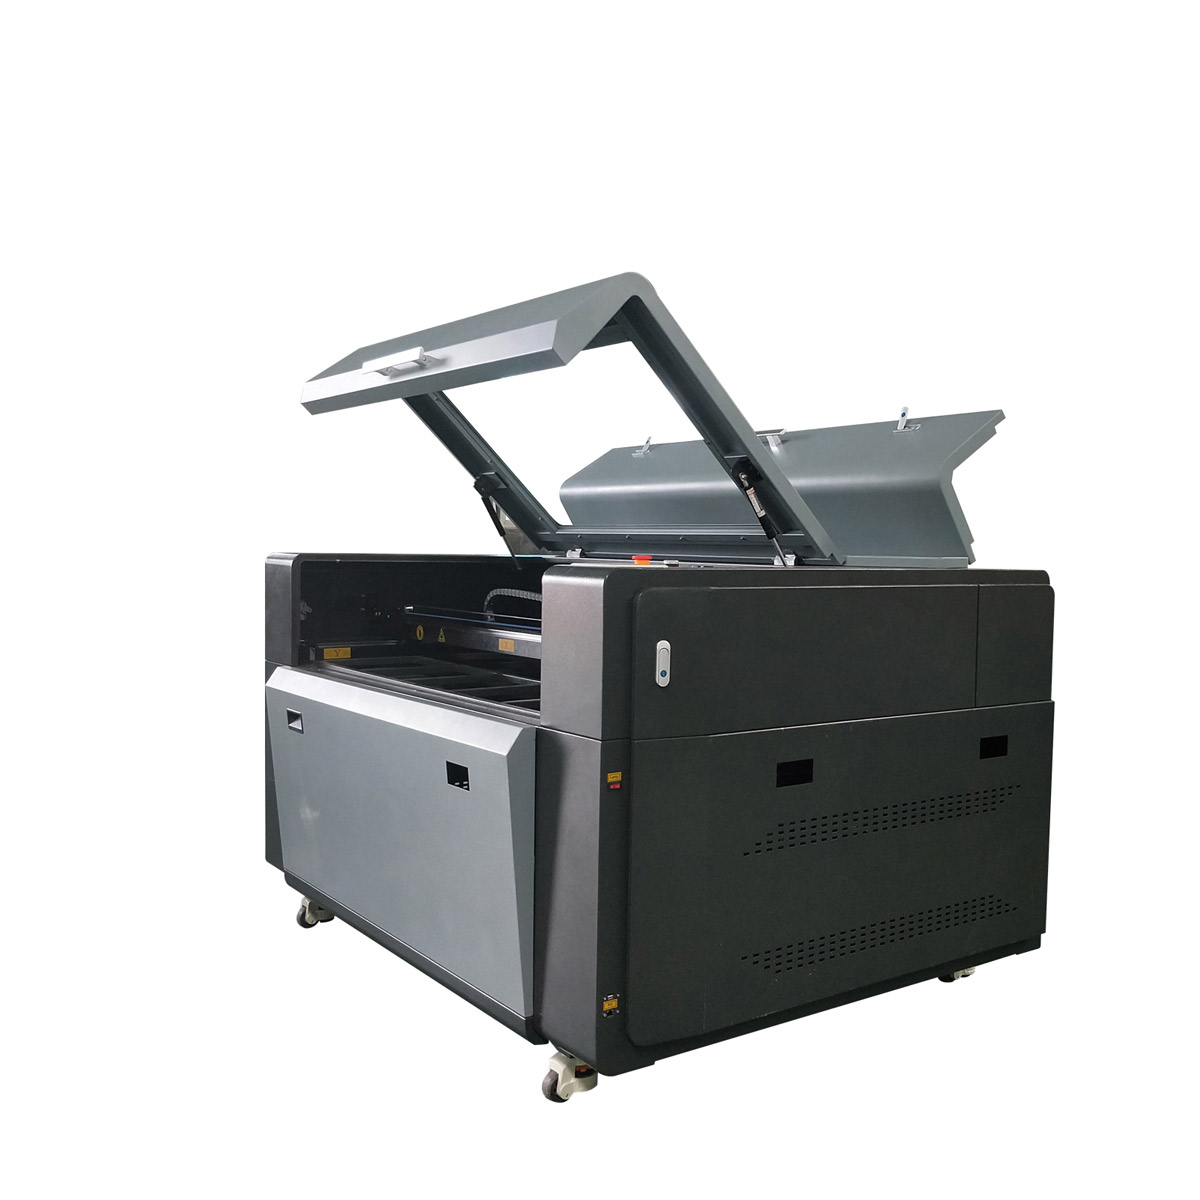 Application laser cutting machines